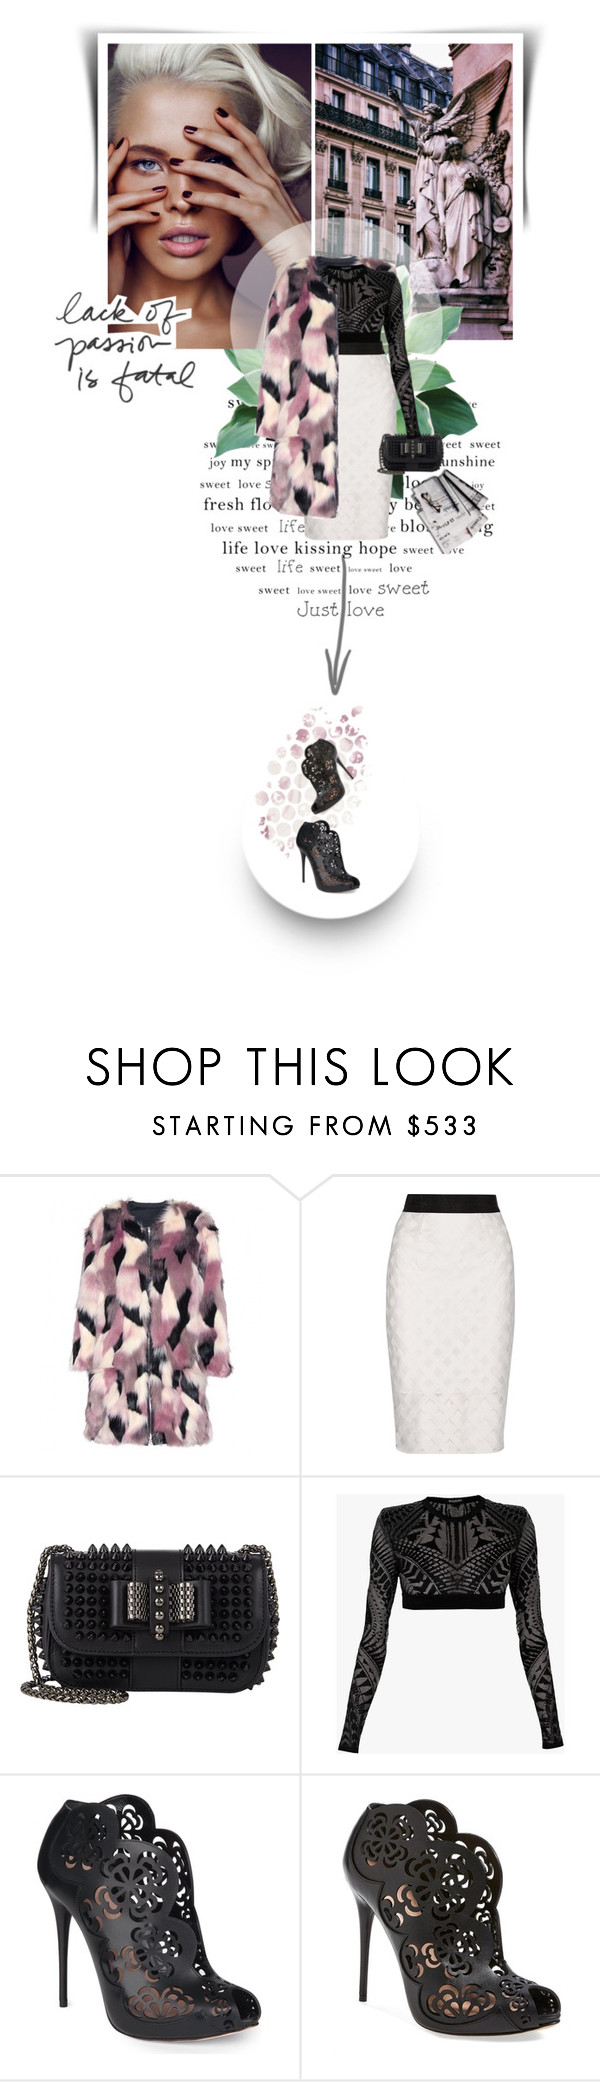 """""""Fashion is about eventually becoming naked"""" by valenthin ❤ liked on Polyvore featuring Nina Ricci, Milly, Christian Louboutin, Balmain, Alexander McQueen, 7 For All Mankind and Prada"""